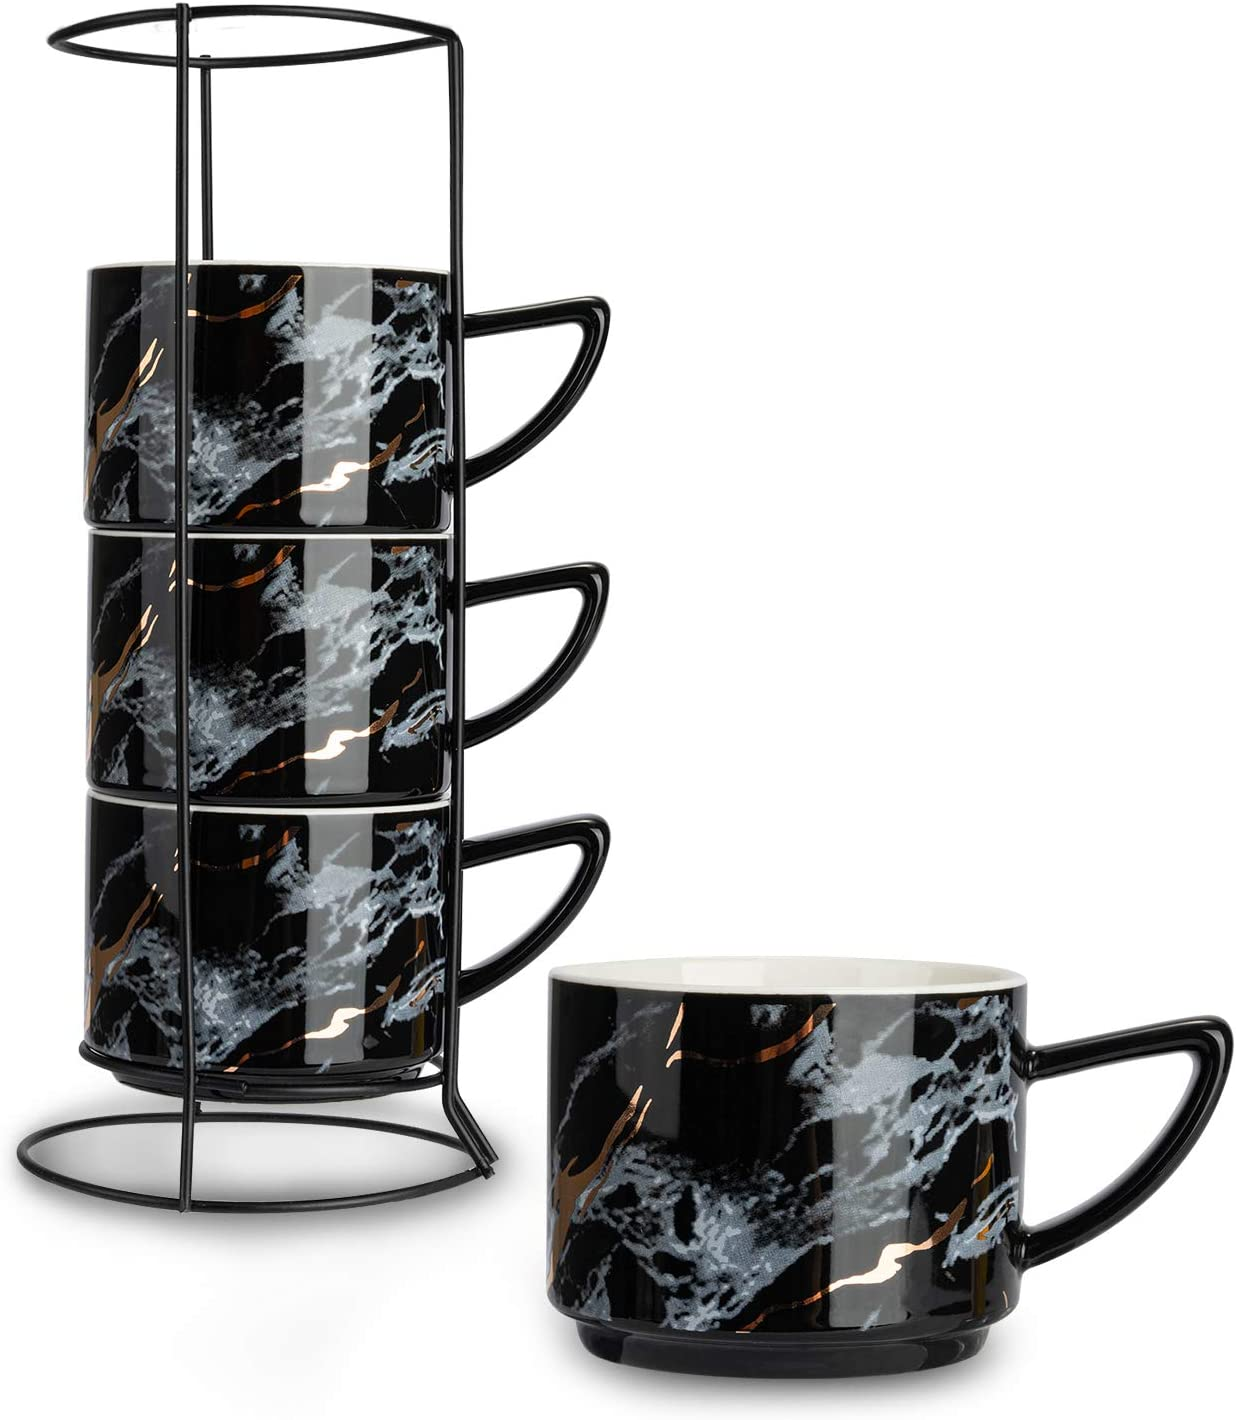 SOPRETY 4pcs Ceramic Marbling Cups Stackable Coffee Mugs 6.8oz, Porcelain Tea Cups with Stainless Steel Stand for Home Office, Black